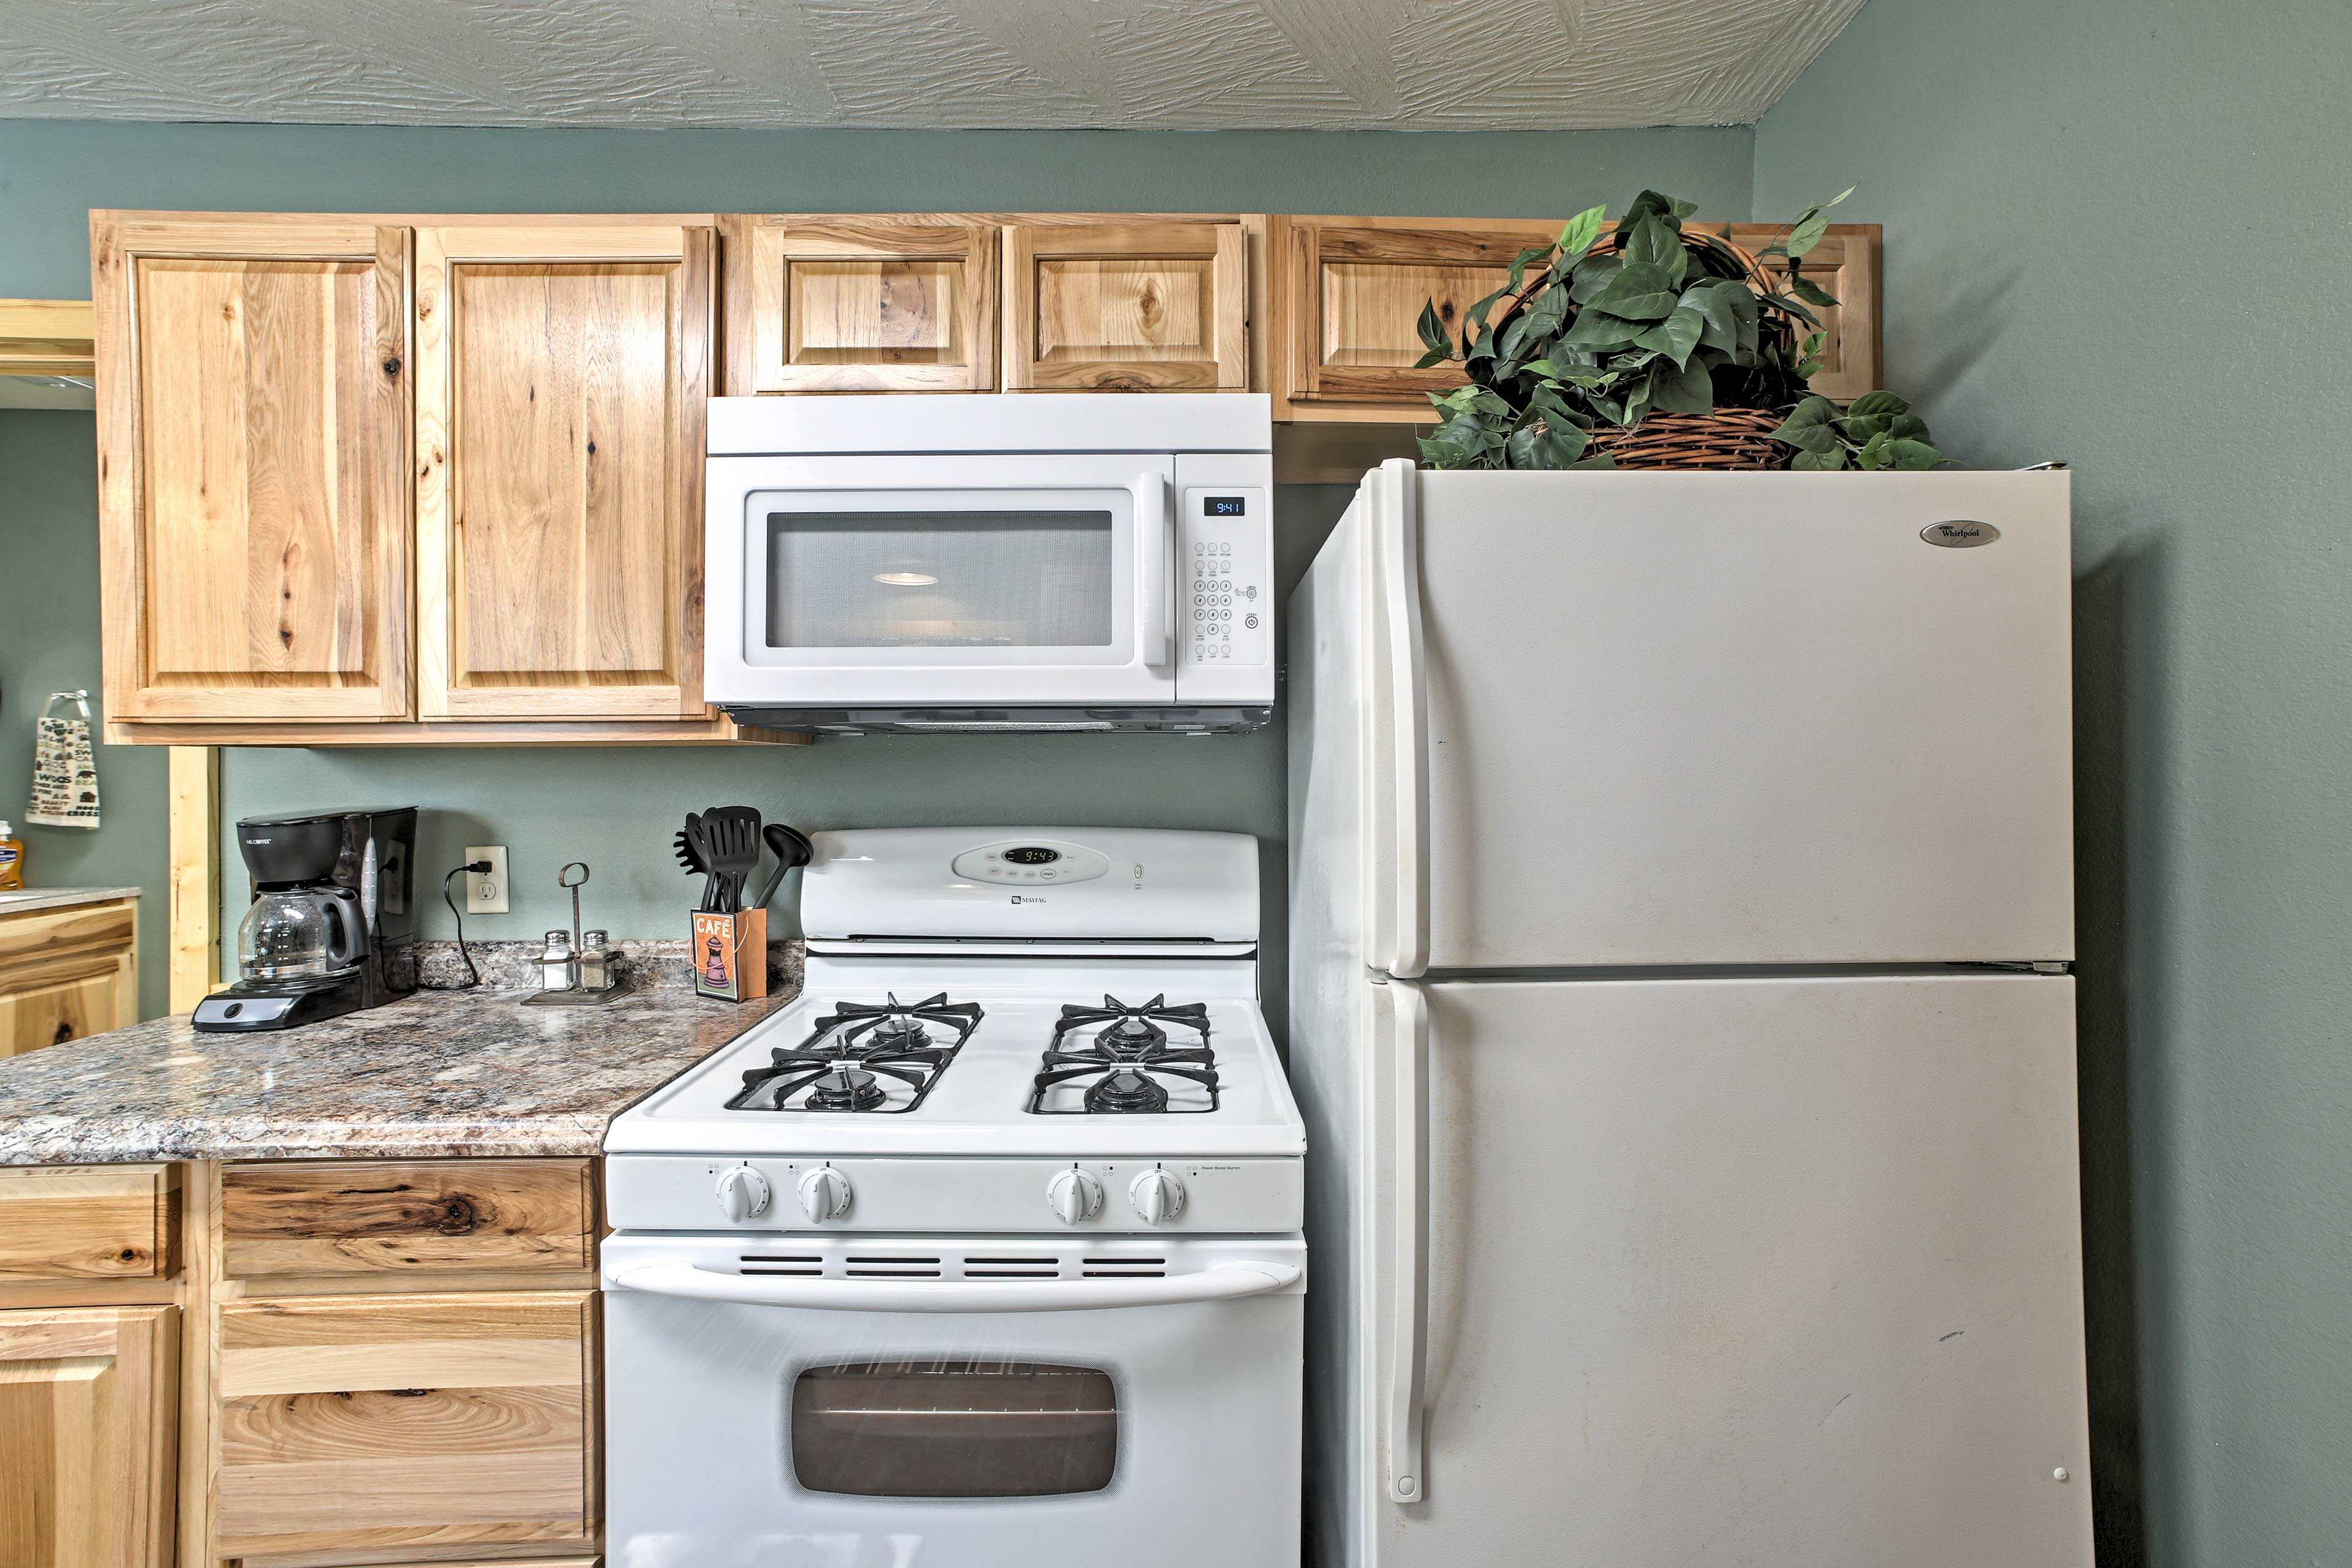 Cooking is easy thanks to the well-stocked room.